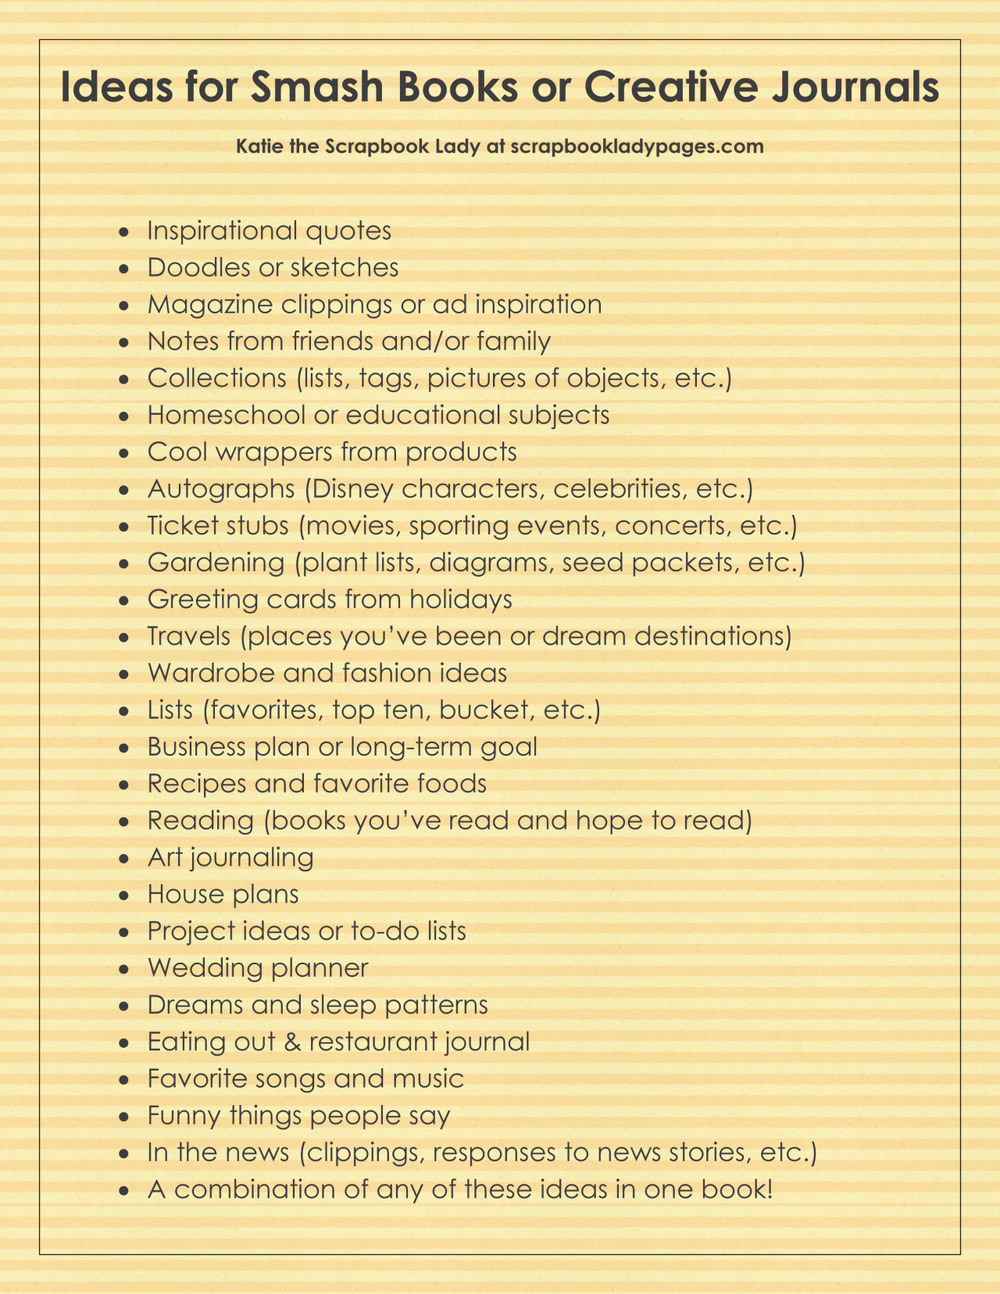 Scrapbook ideas list - If You Are Looking For More Ideas On How To Use These Clever Little Books Or Any Type Of Notebook Scrapping Be Sure To Save This List